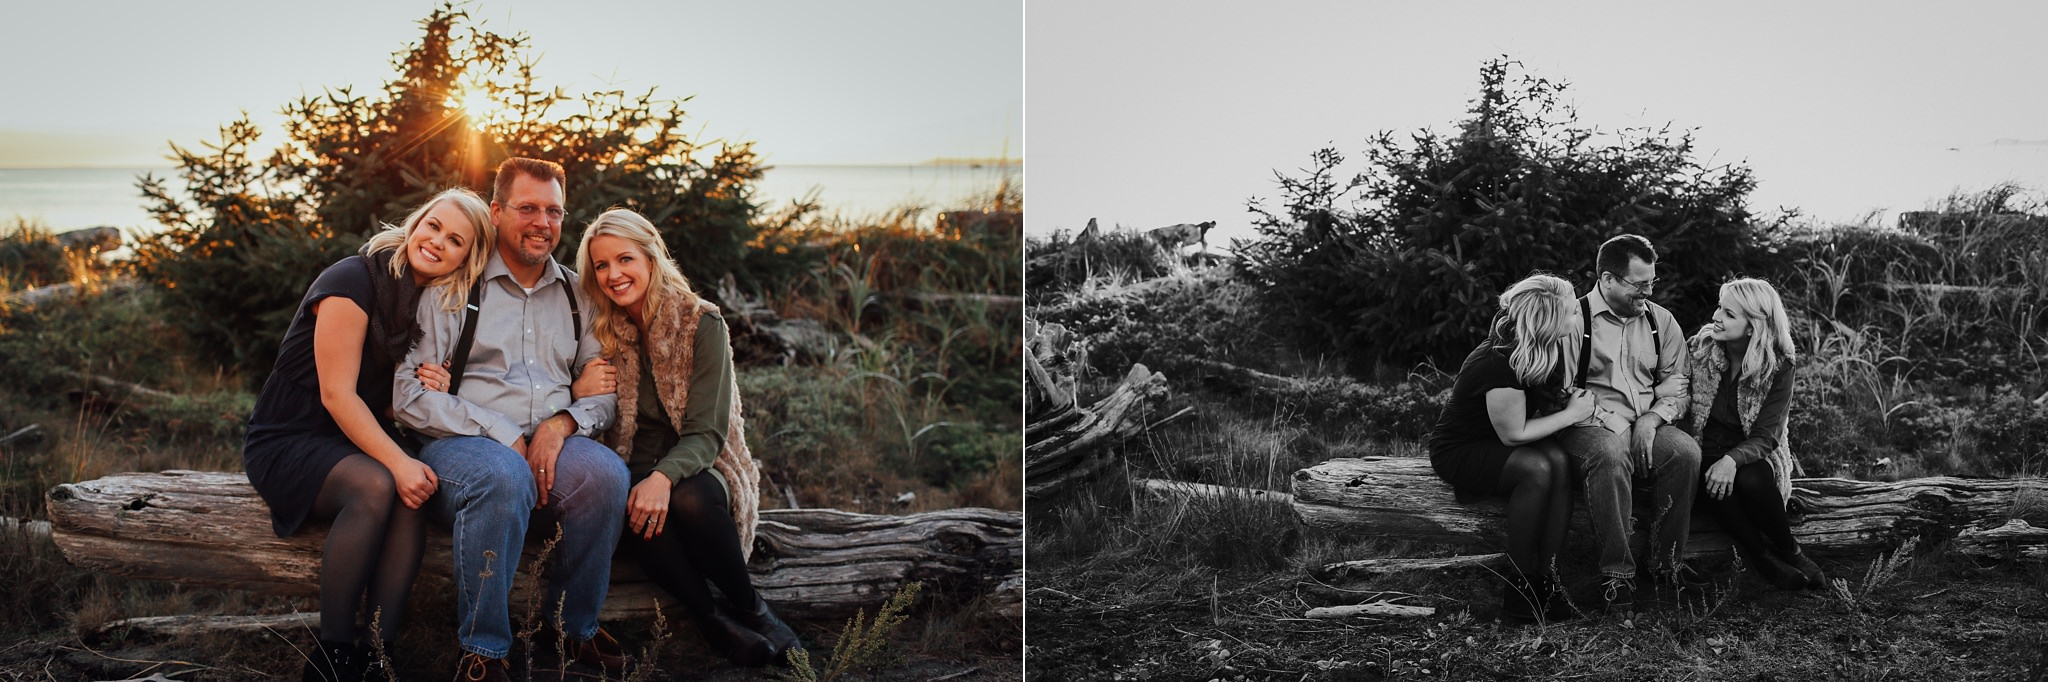 Whidbey-Island-Family-Photographer-Kara-Chappell-Photography_1383.jpg